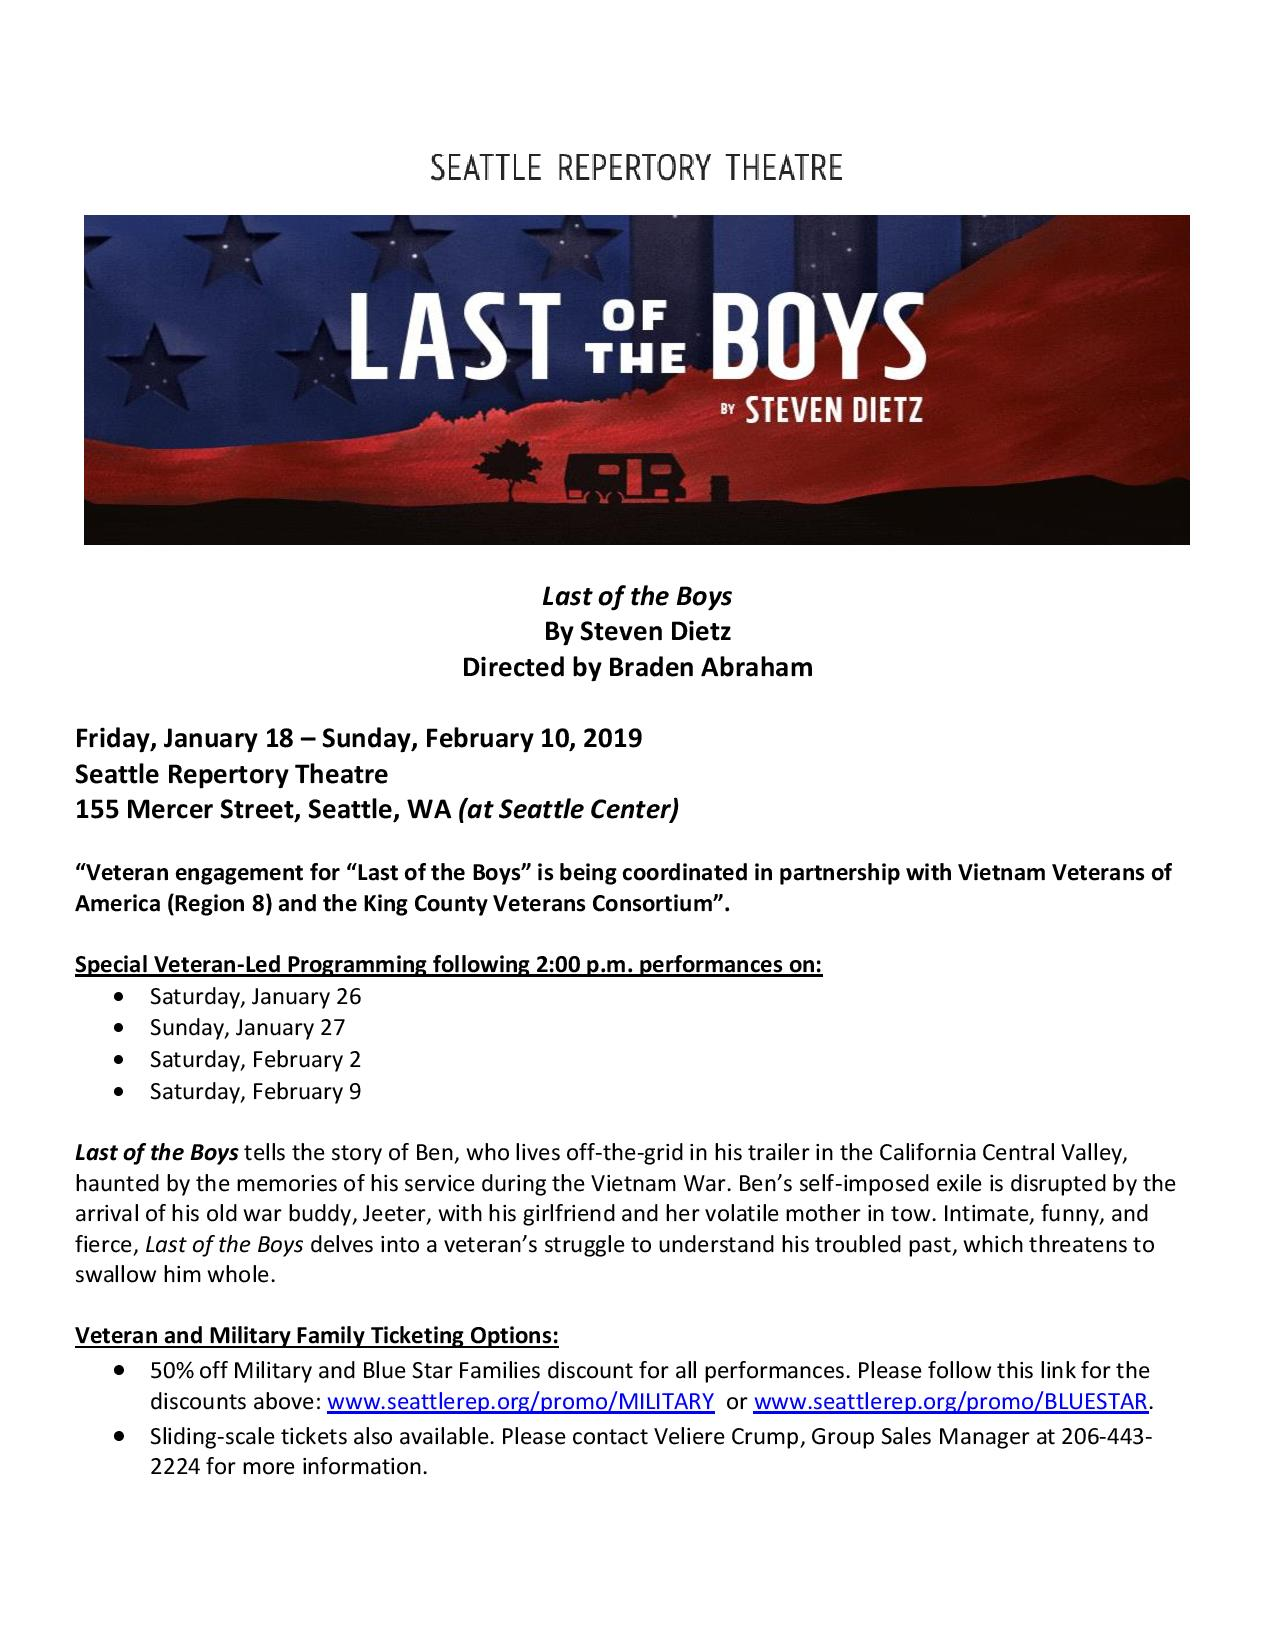 Last of the Boys - Veterans Community Flyer-page-001.jpg